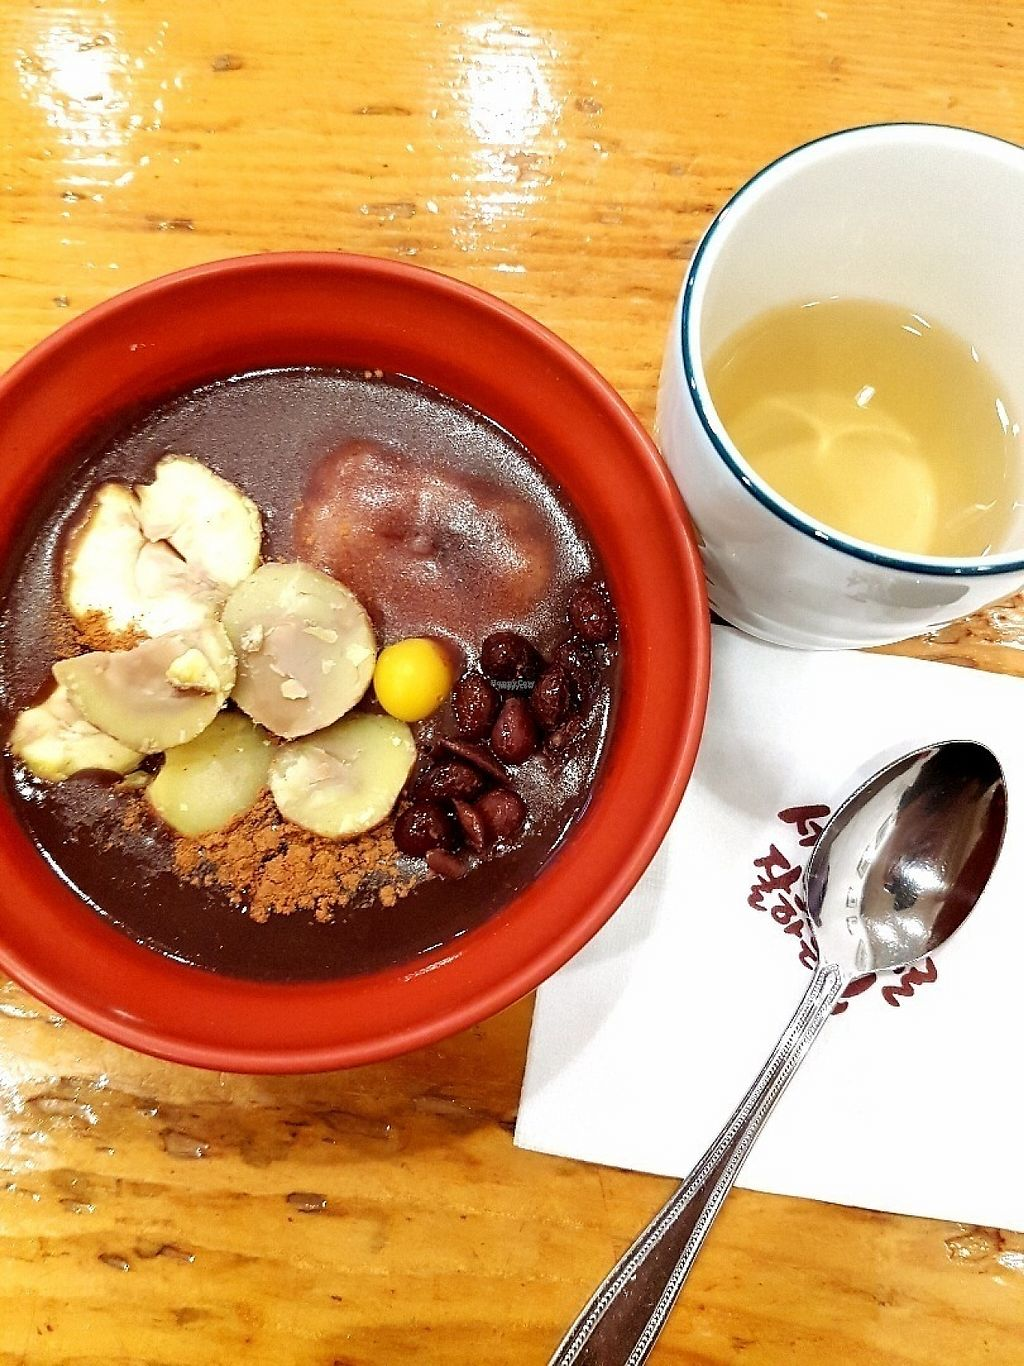 """Photo of The Second Best in Seoul - 서울서둘째로잘하는집  by <a href=""""/members/profile/natalik"""">natalik</a> <br/>Heavenly red bean porridge <br/> November 30, 2016  - <a href='/contact/abuse/image/83430/195911'>Report</a>"""